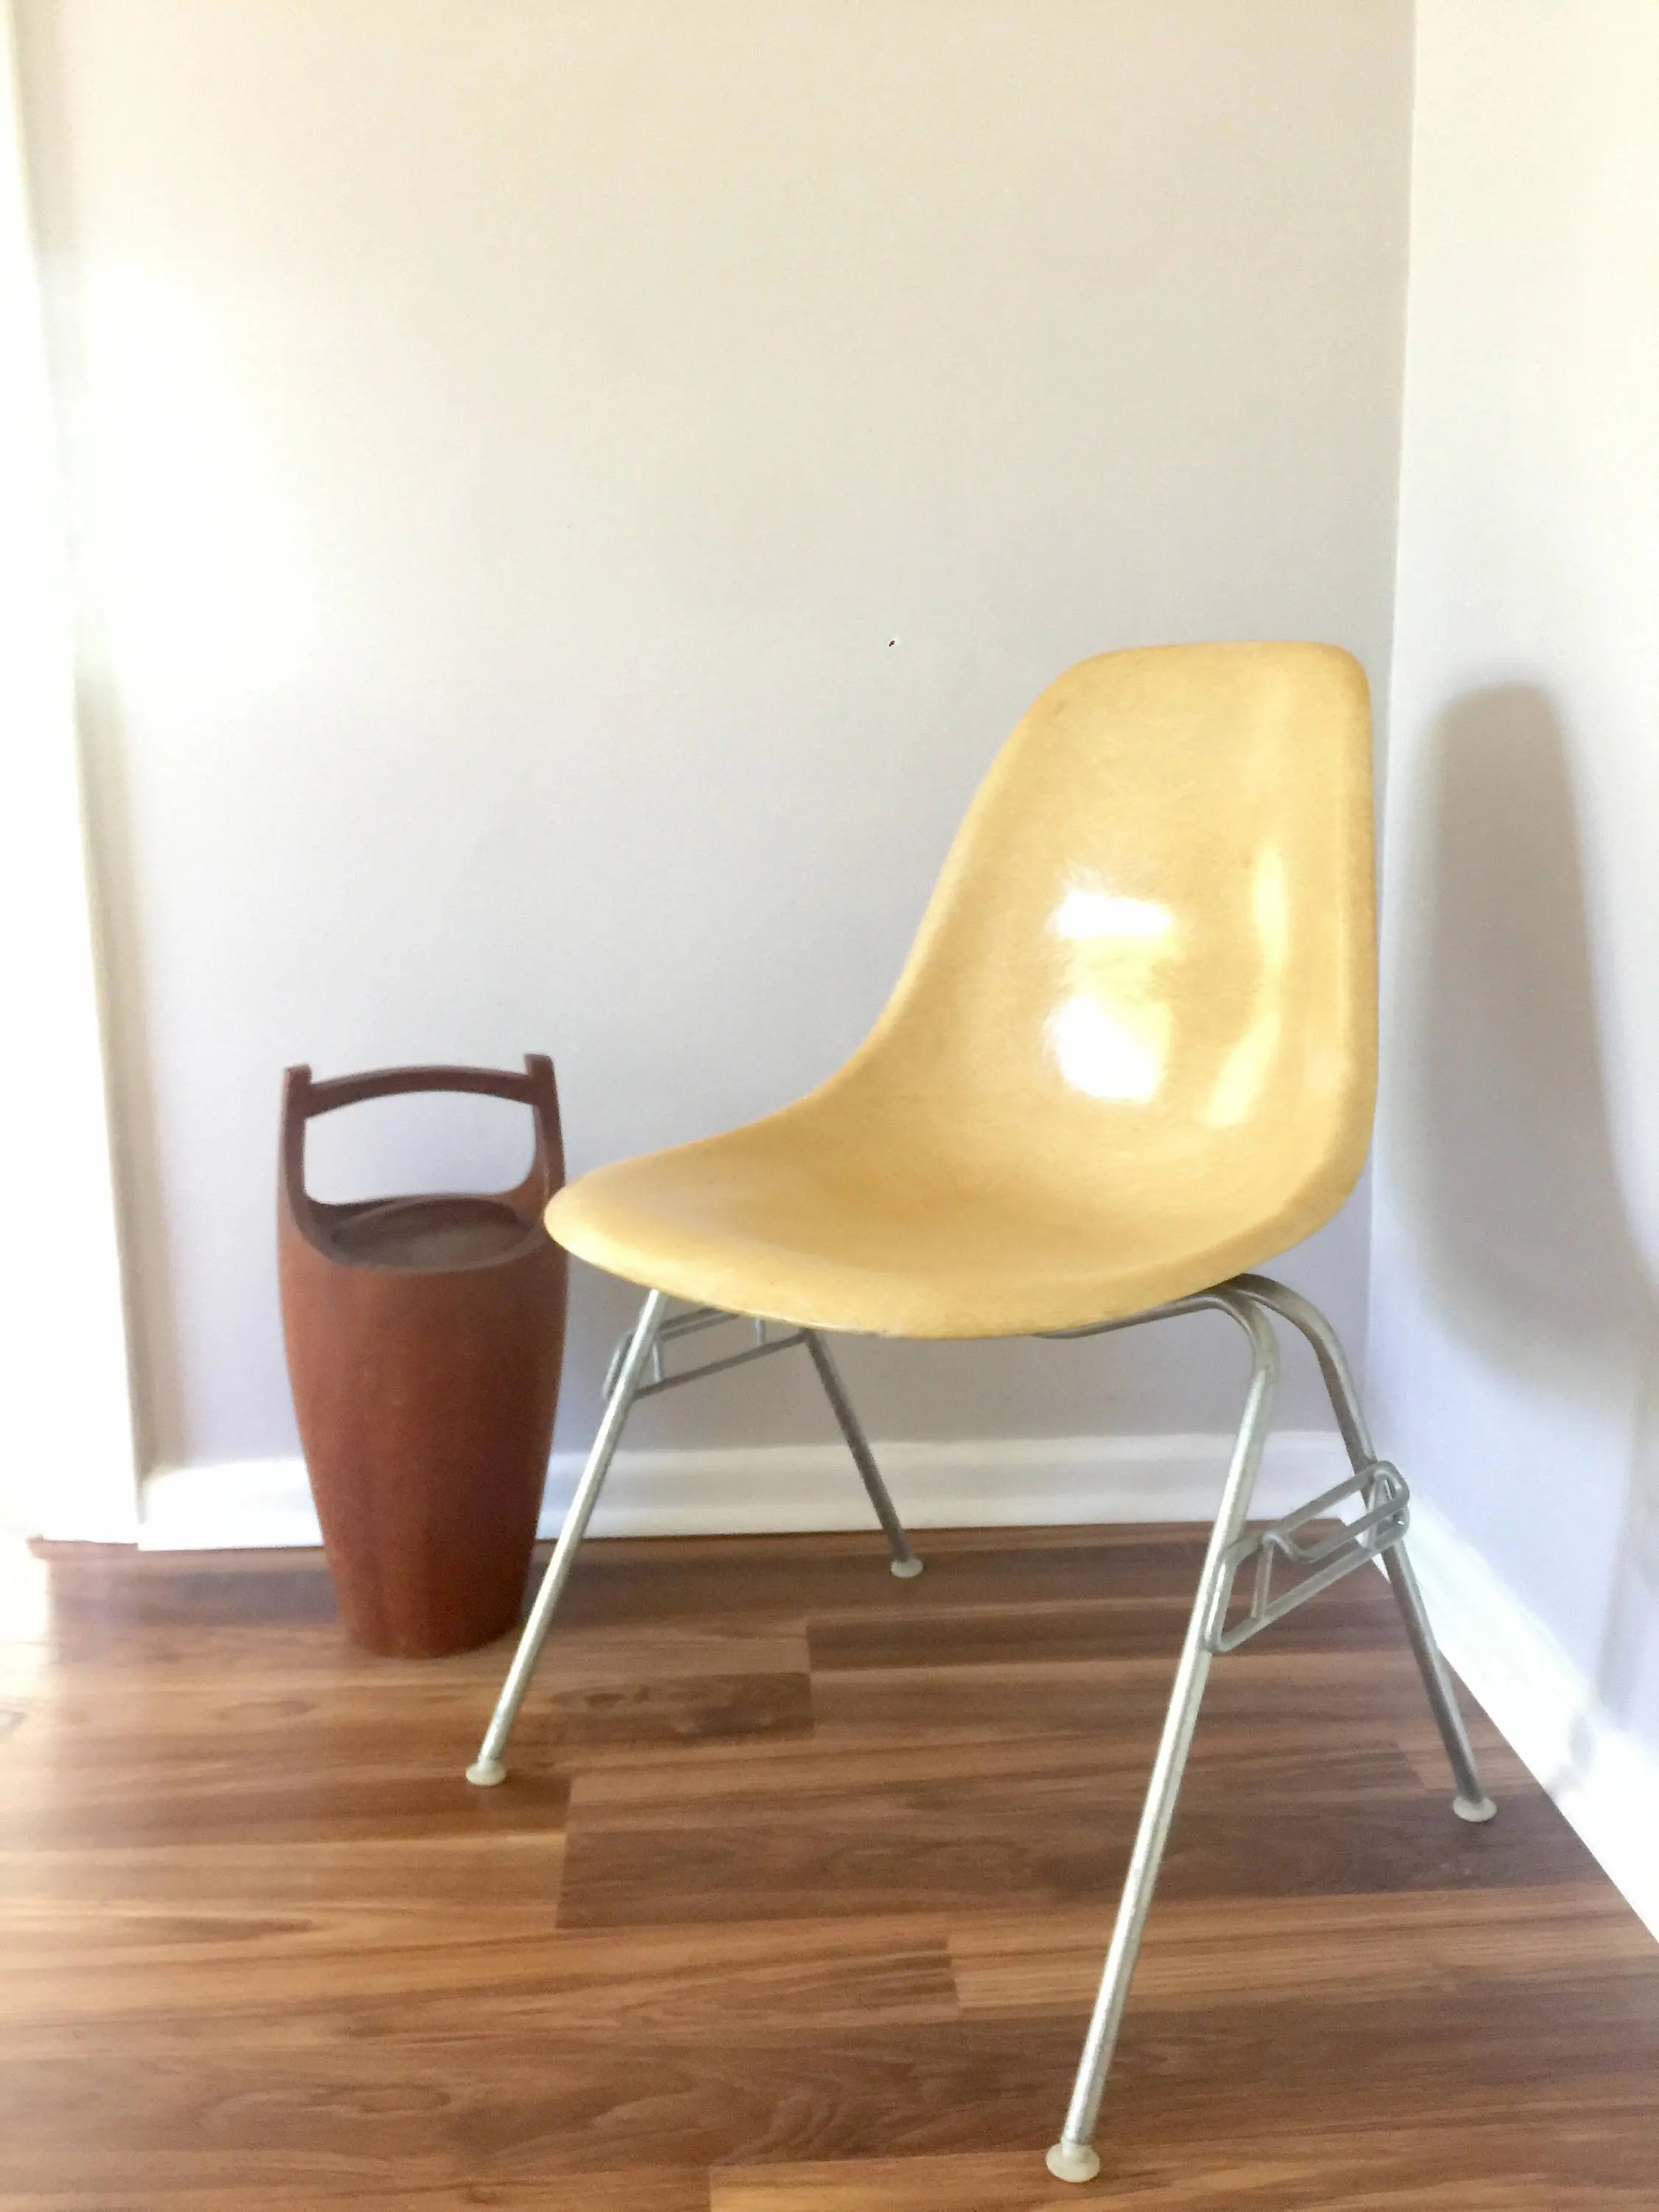 Charles Eames Vintage Yellow Fiberglass Charles Eames Herman Miller School House Base Chair